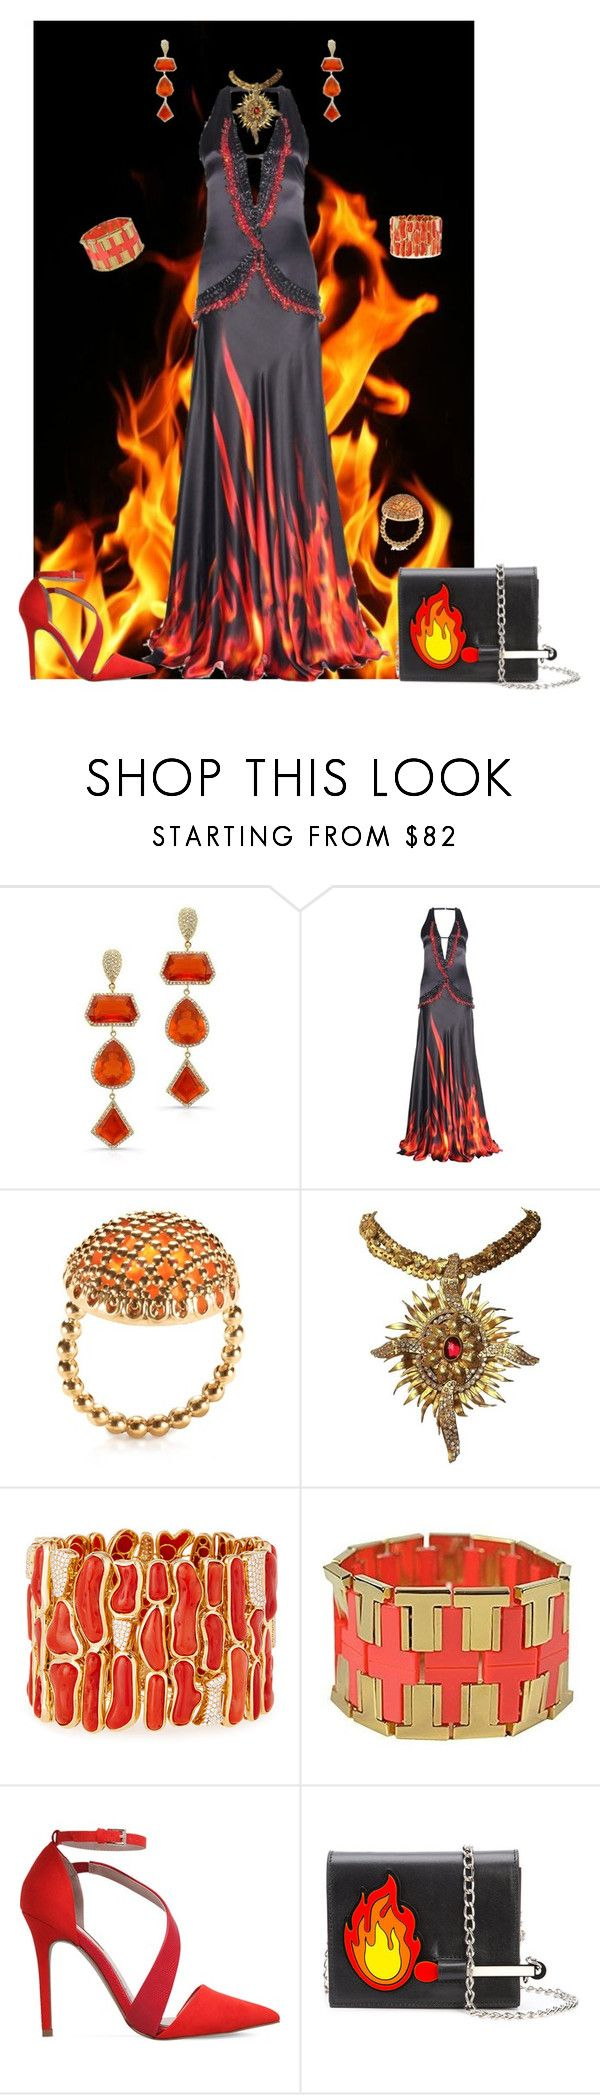 """""""Burning Up"""" by yvonnewarren ❤ liked on Polyvore featuring Anne Sisteron, Roberto Cavalli, Géraldine Valluet, Pamela Huizenga, Tory Burch and Miss KG"""